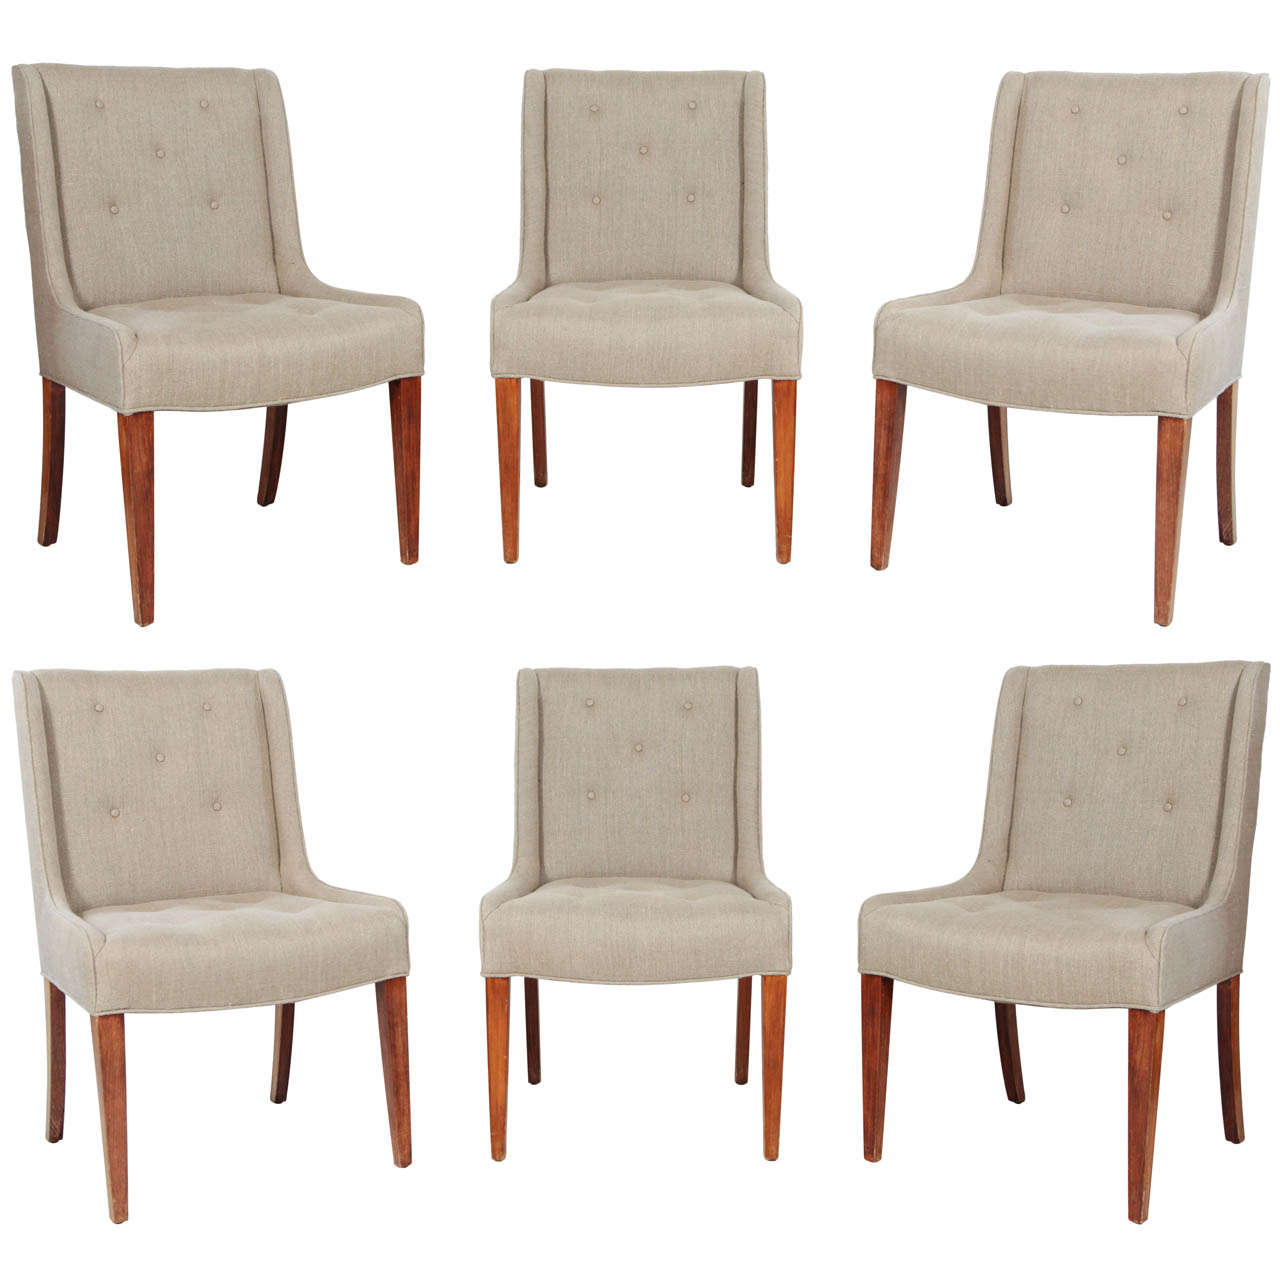 Set Of Six Tufted Dining Chairs In Hemp Linen 1